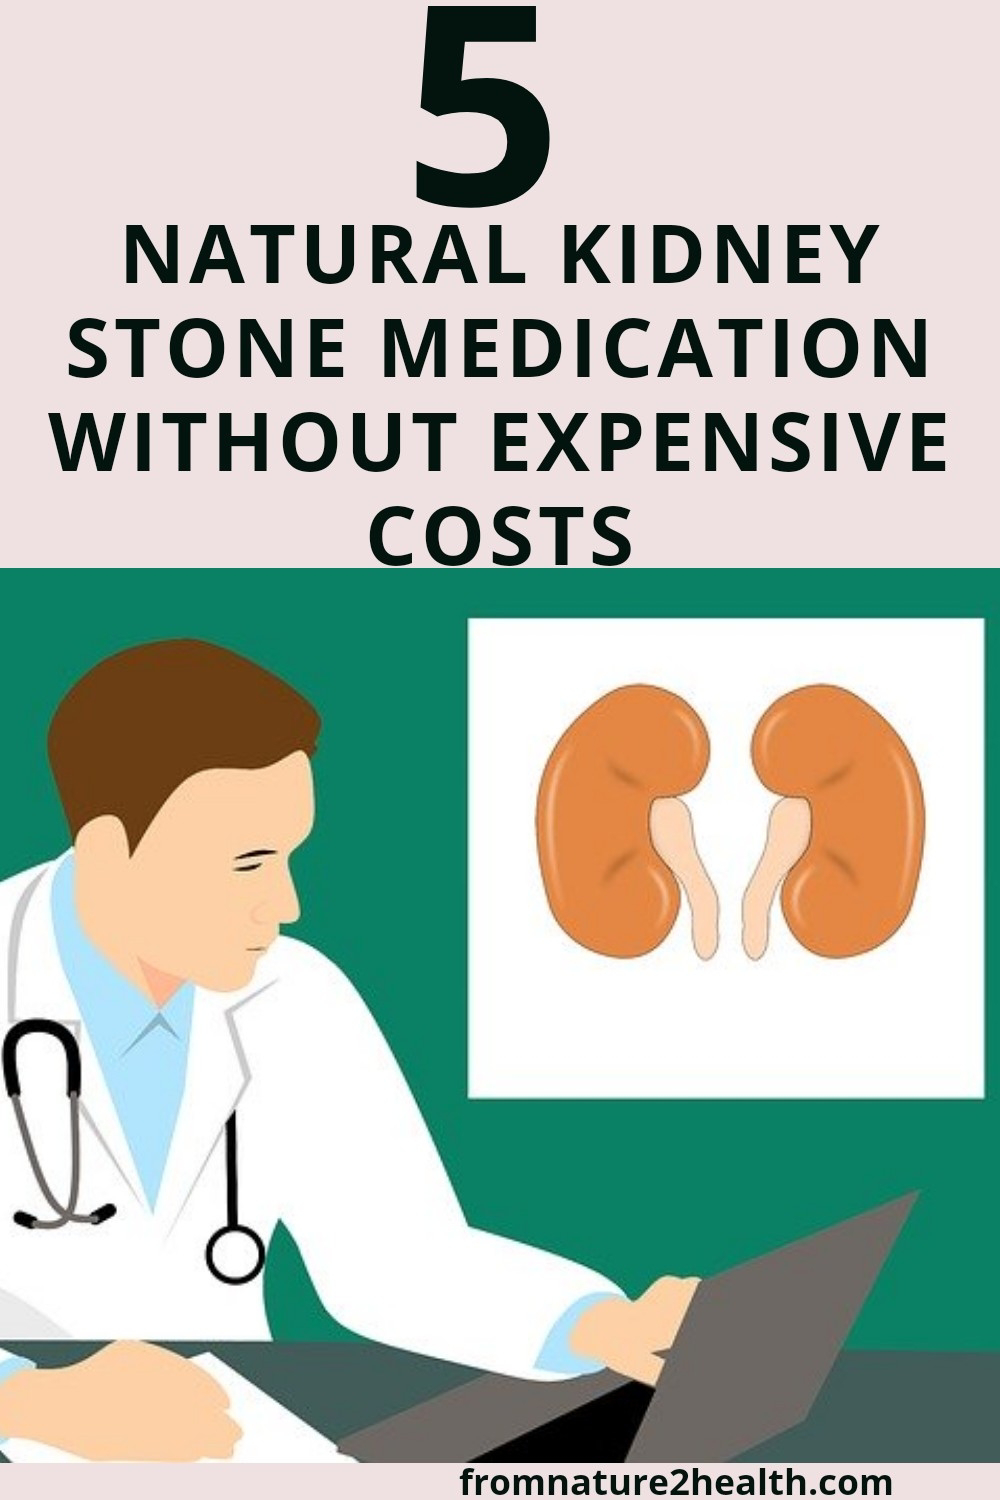 5 Natural Kidney Stone Medication Without Expensive Costs, asparagus, celery, lemon, lime, water